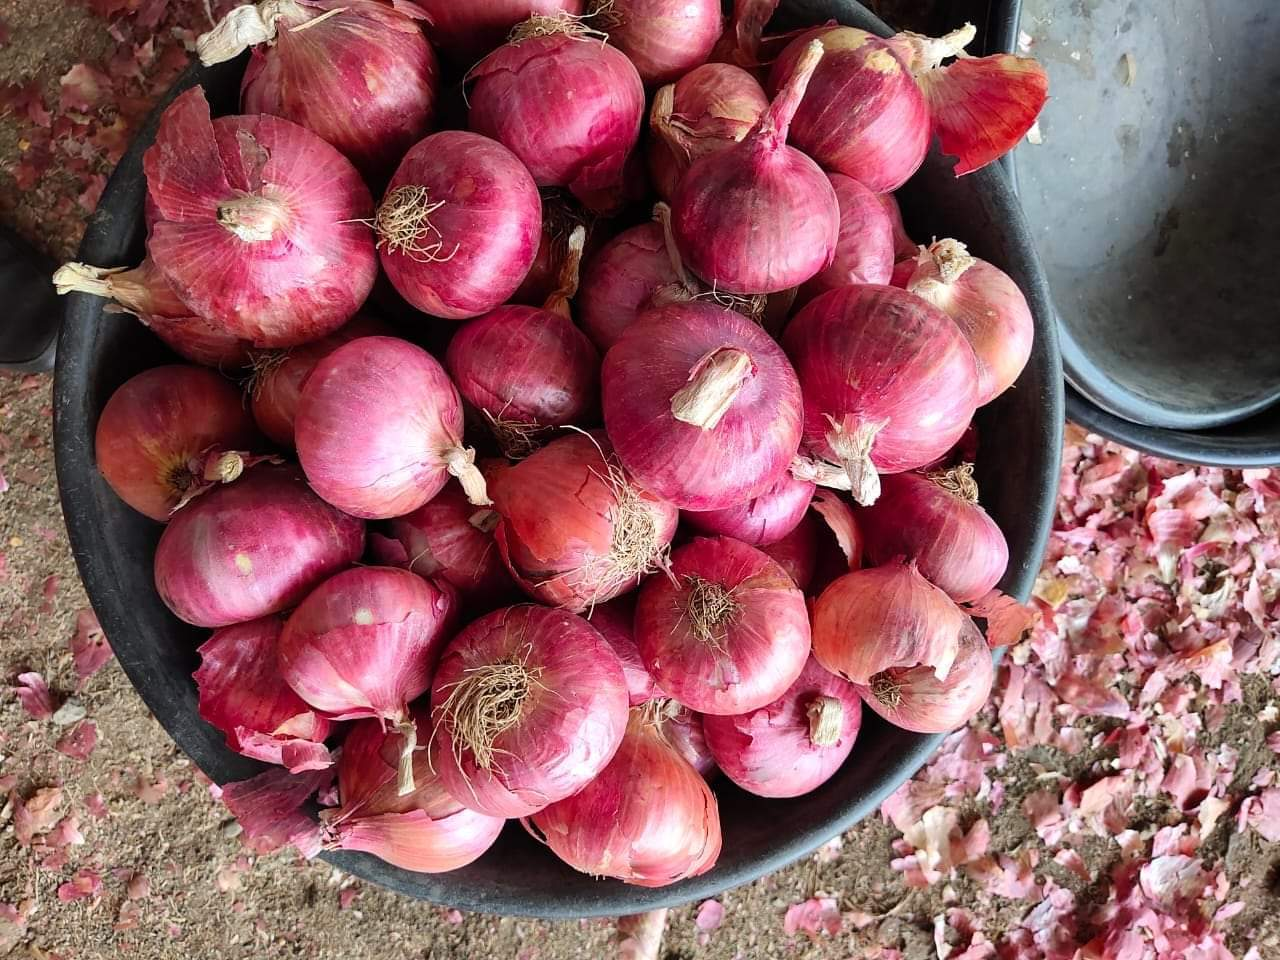 UP Bihar And Jharkhand Quality Onion